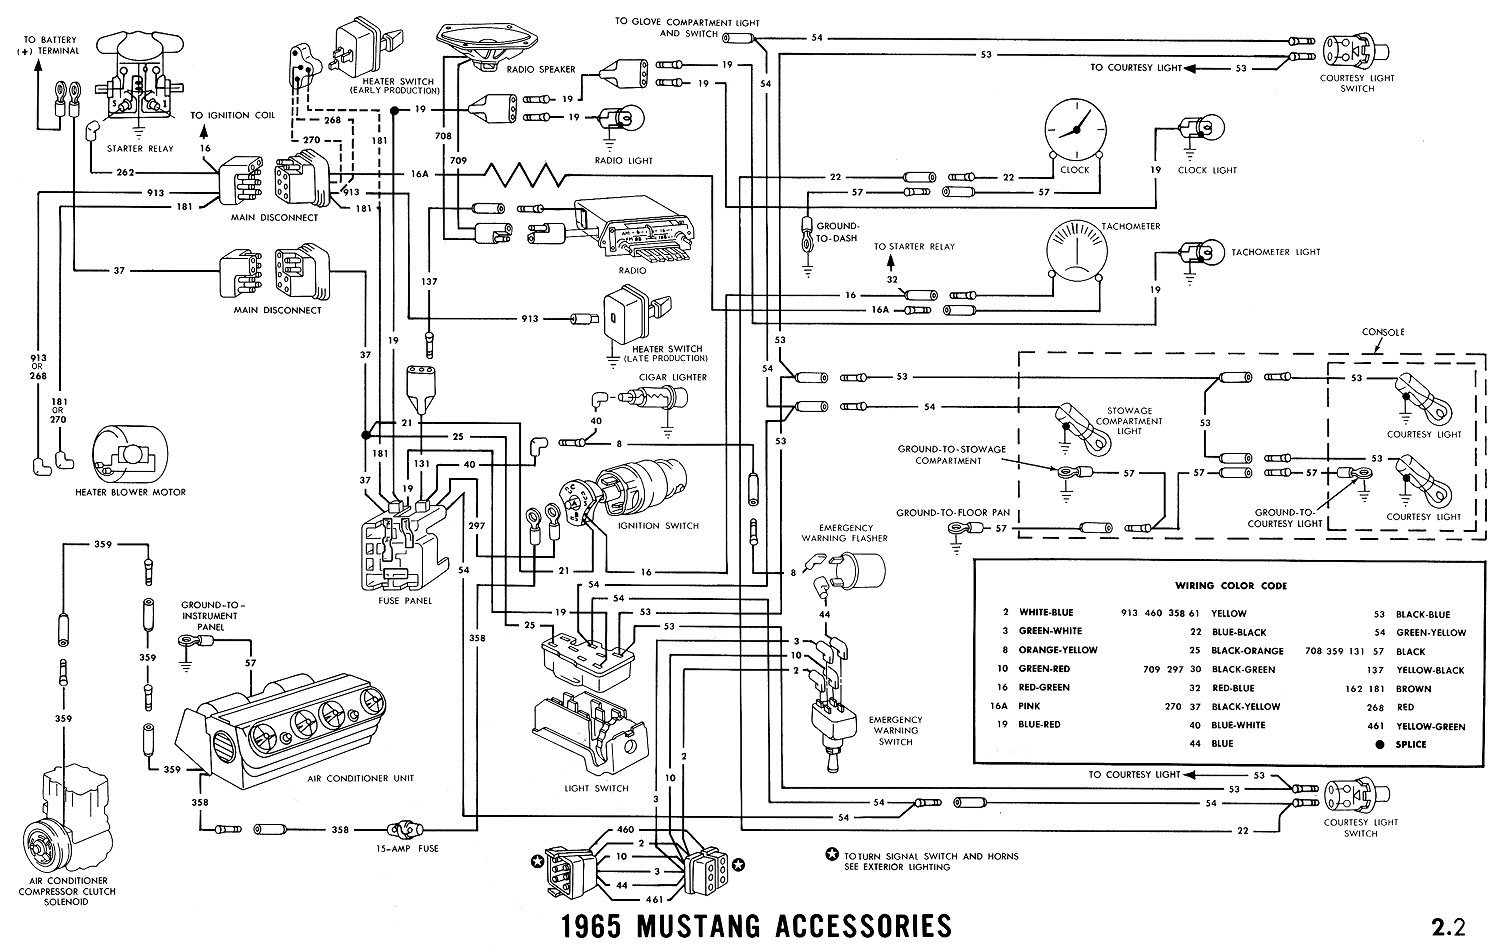 hight resolution of 1990 ford mustang color wiring diagram wiring library1990 ford mustang color wiring diagram